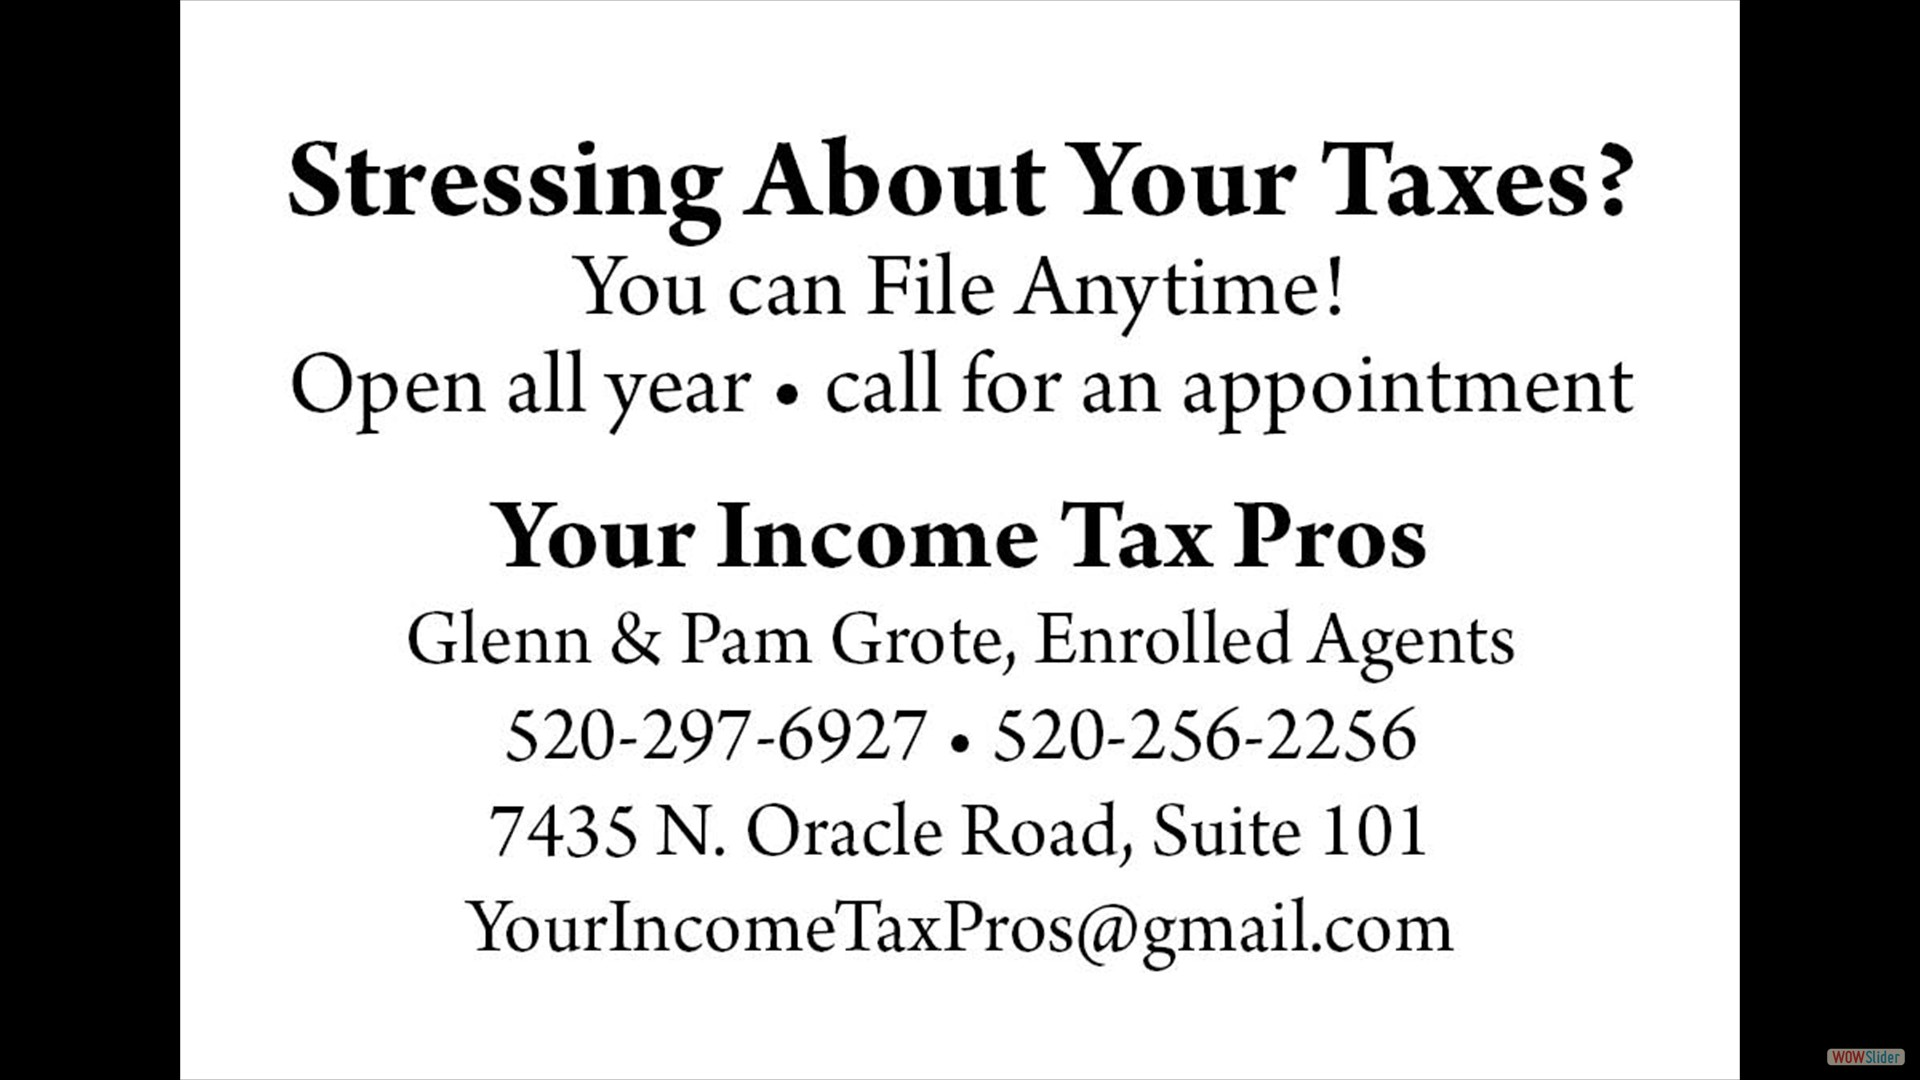 Your Income Tax Pros